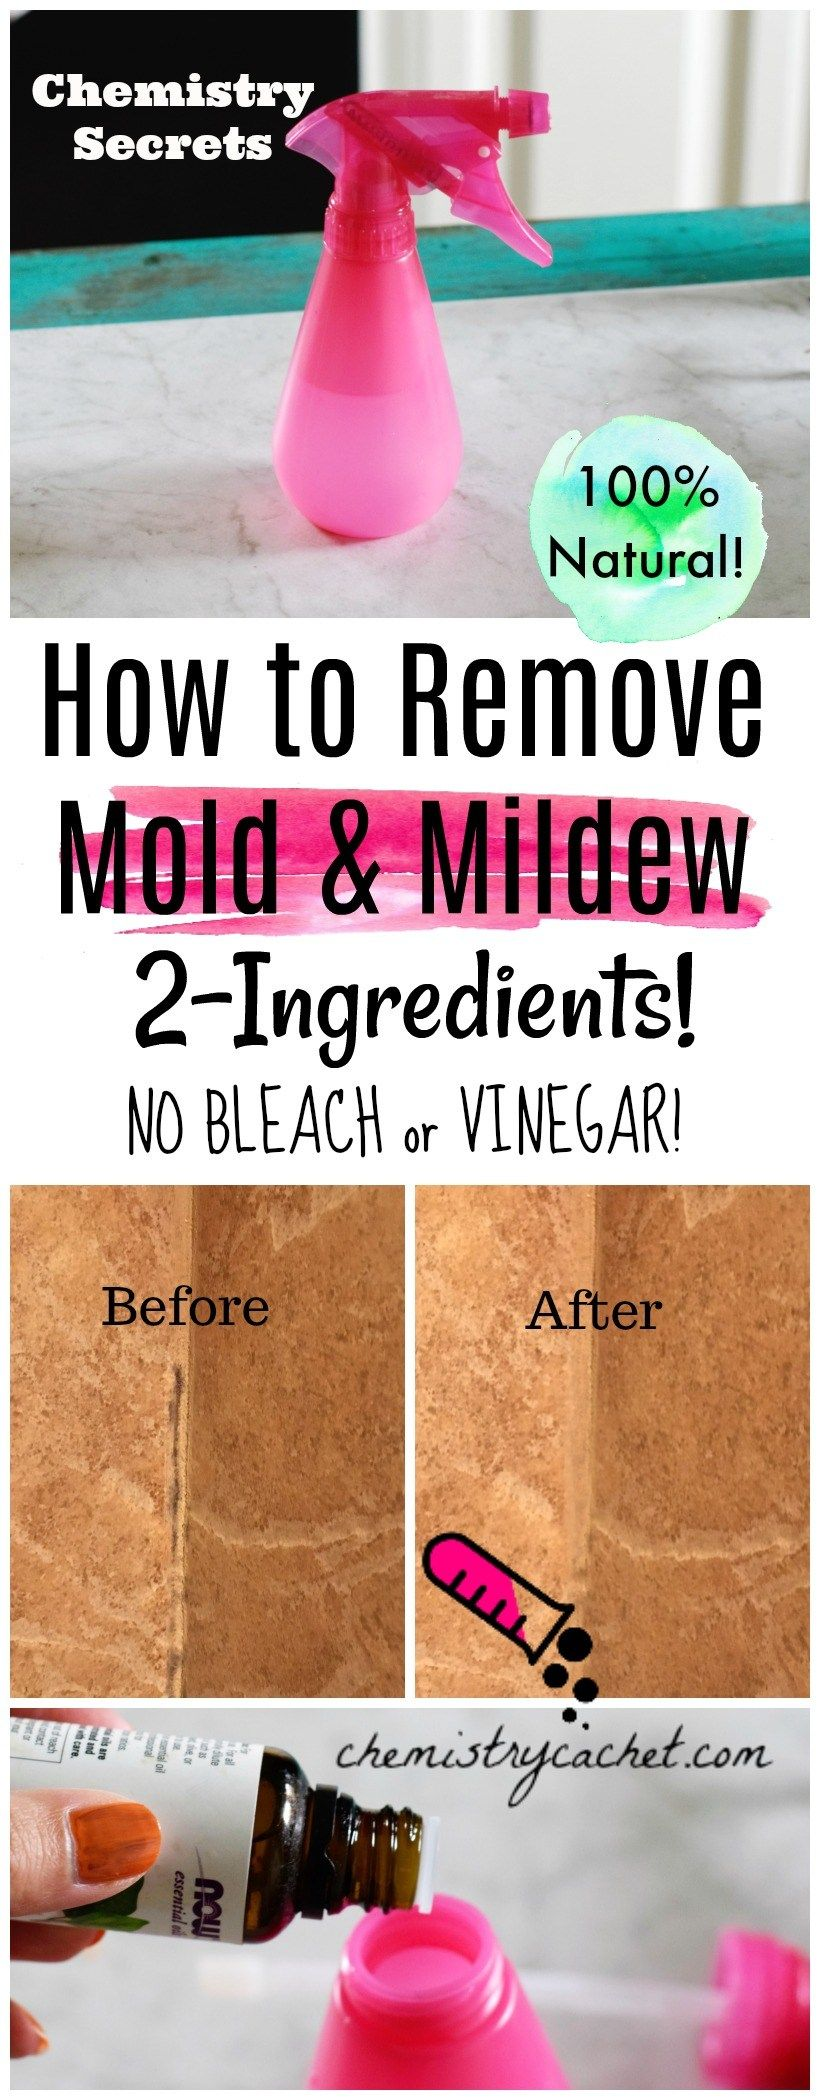 The Best Way to Remove Mold u Mildew with  Ingredients NO Bleach